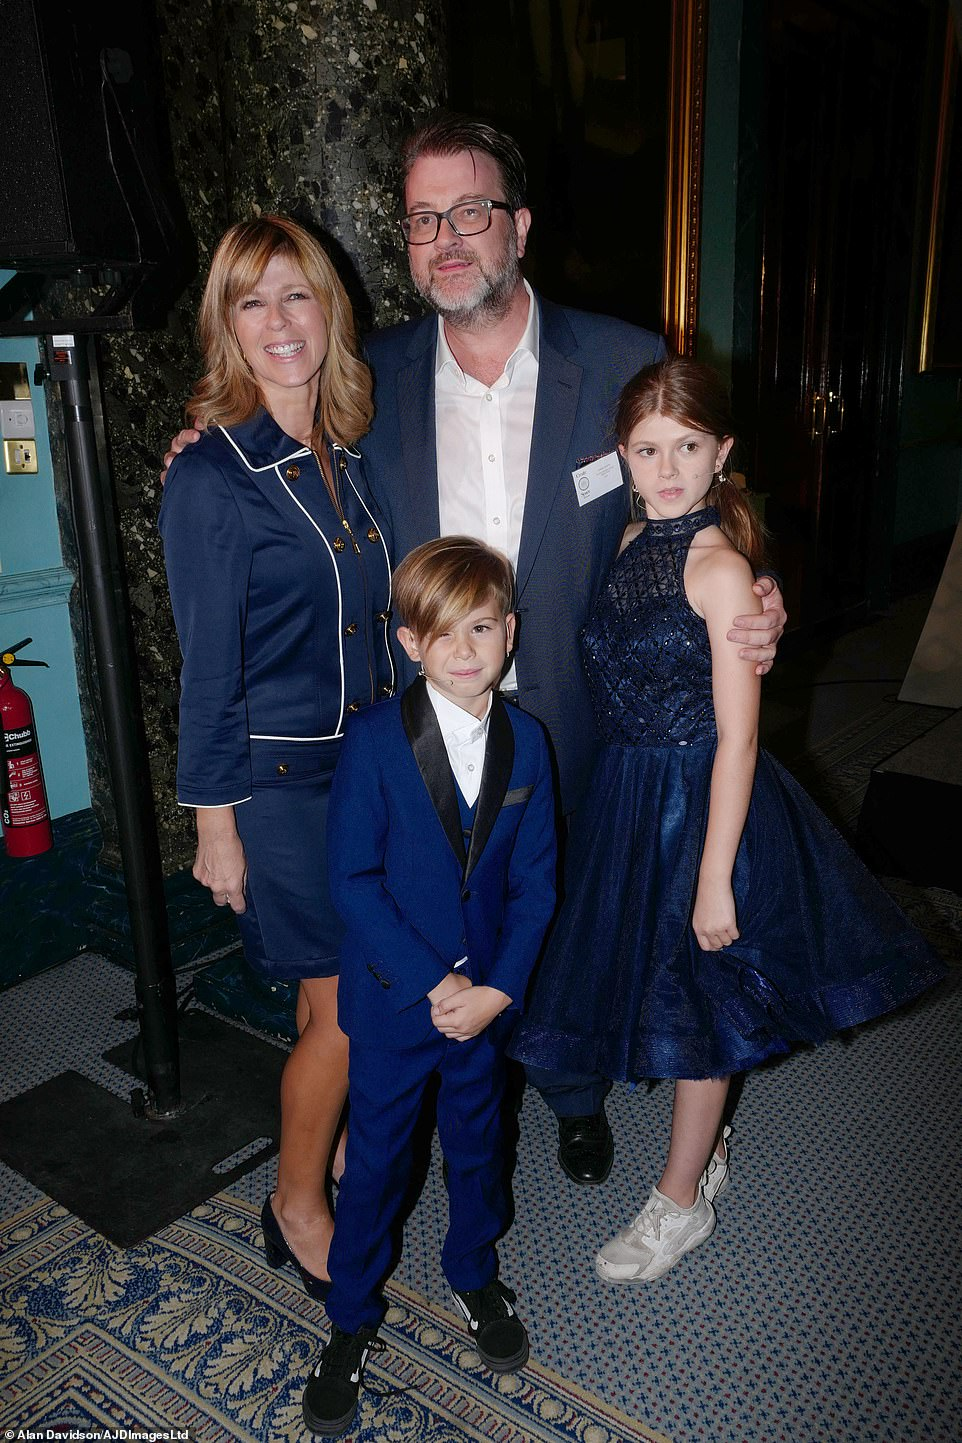 Happy news: Kate Garraway's husband Derek Draper is finally home after spending more than a year in intensive care following a battle with coronavirus (pictured in 2018 with Kate and children Darcey, 15, and Billy, 11)